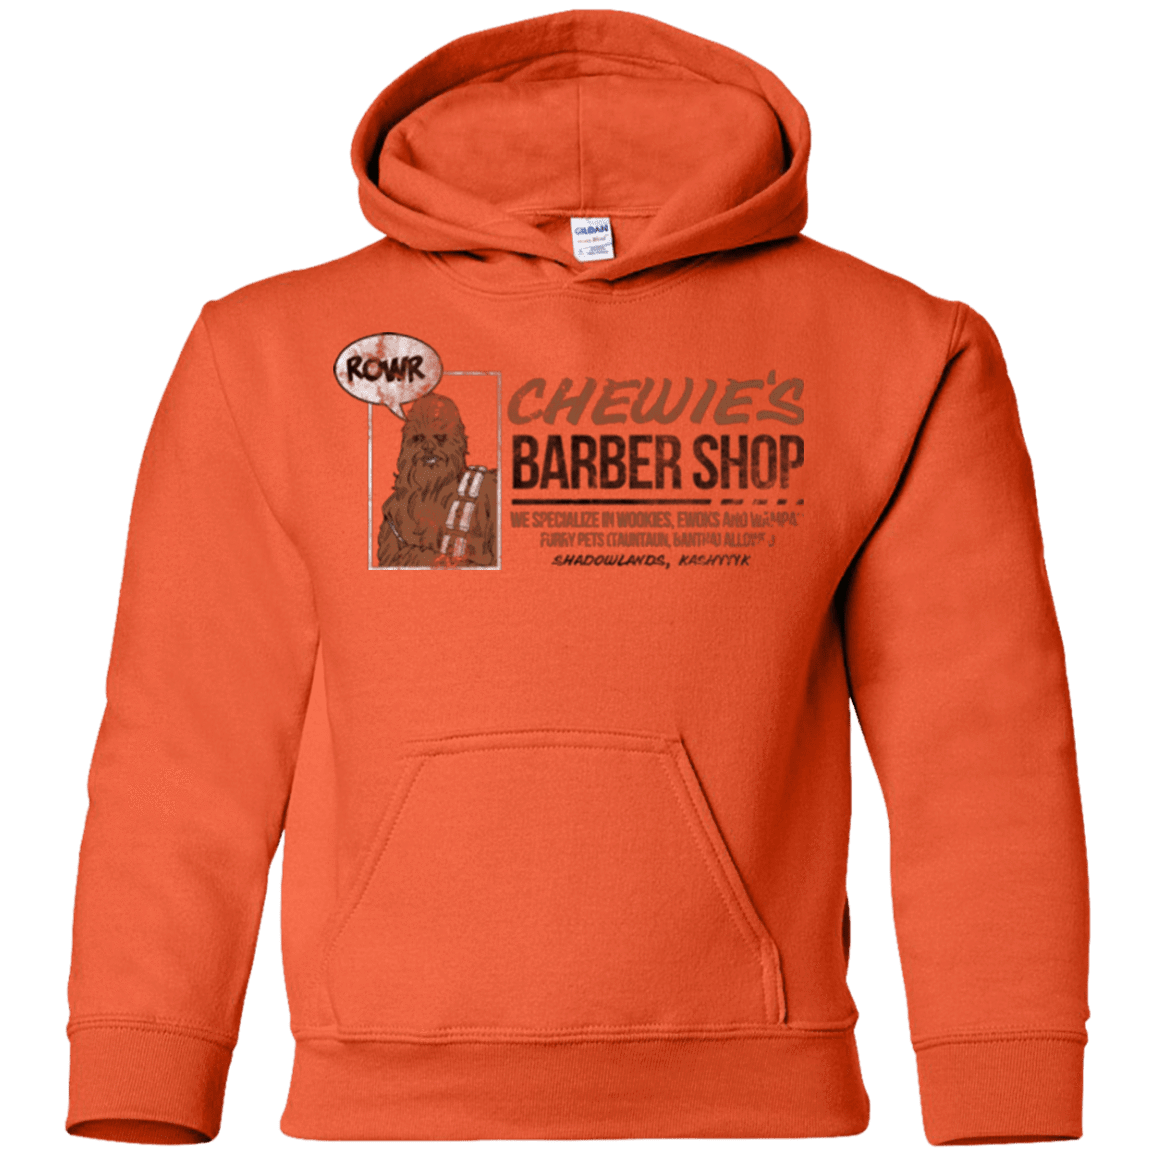 Chewie's Barber Shop Youth Hoodie